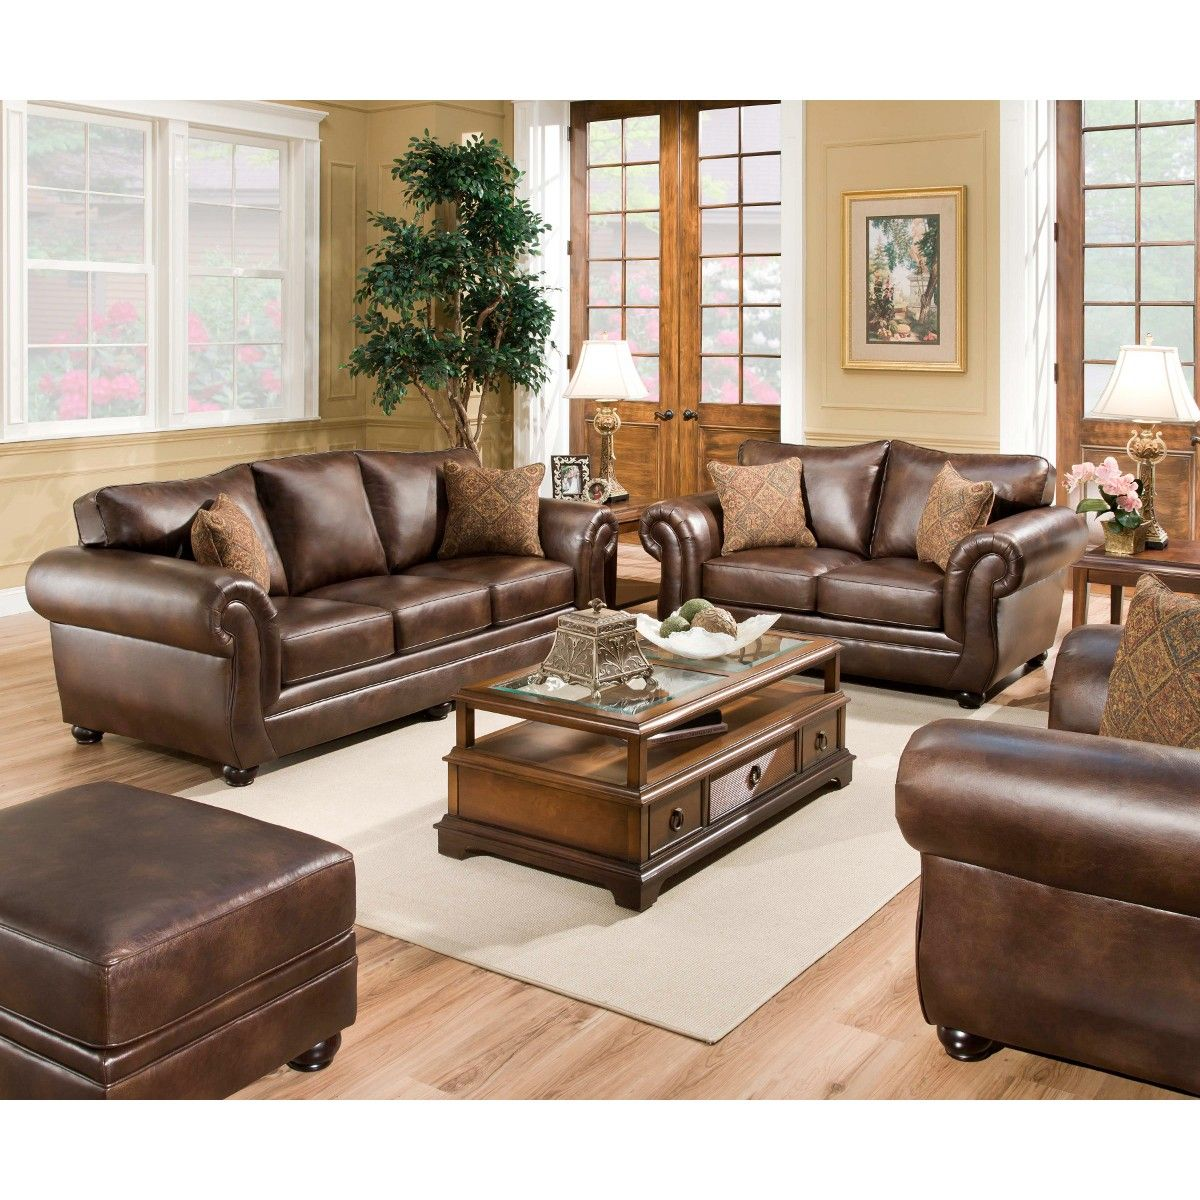 Living Room Sets At Conns united miracle sofa | leather (4280mirsofa) | conn's | furniture